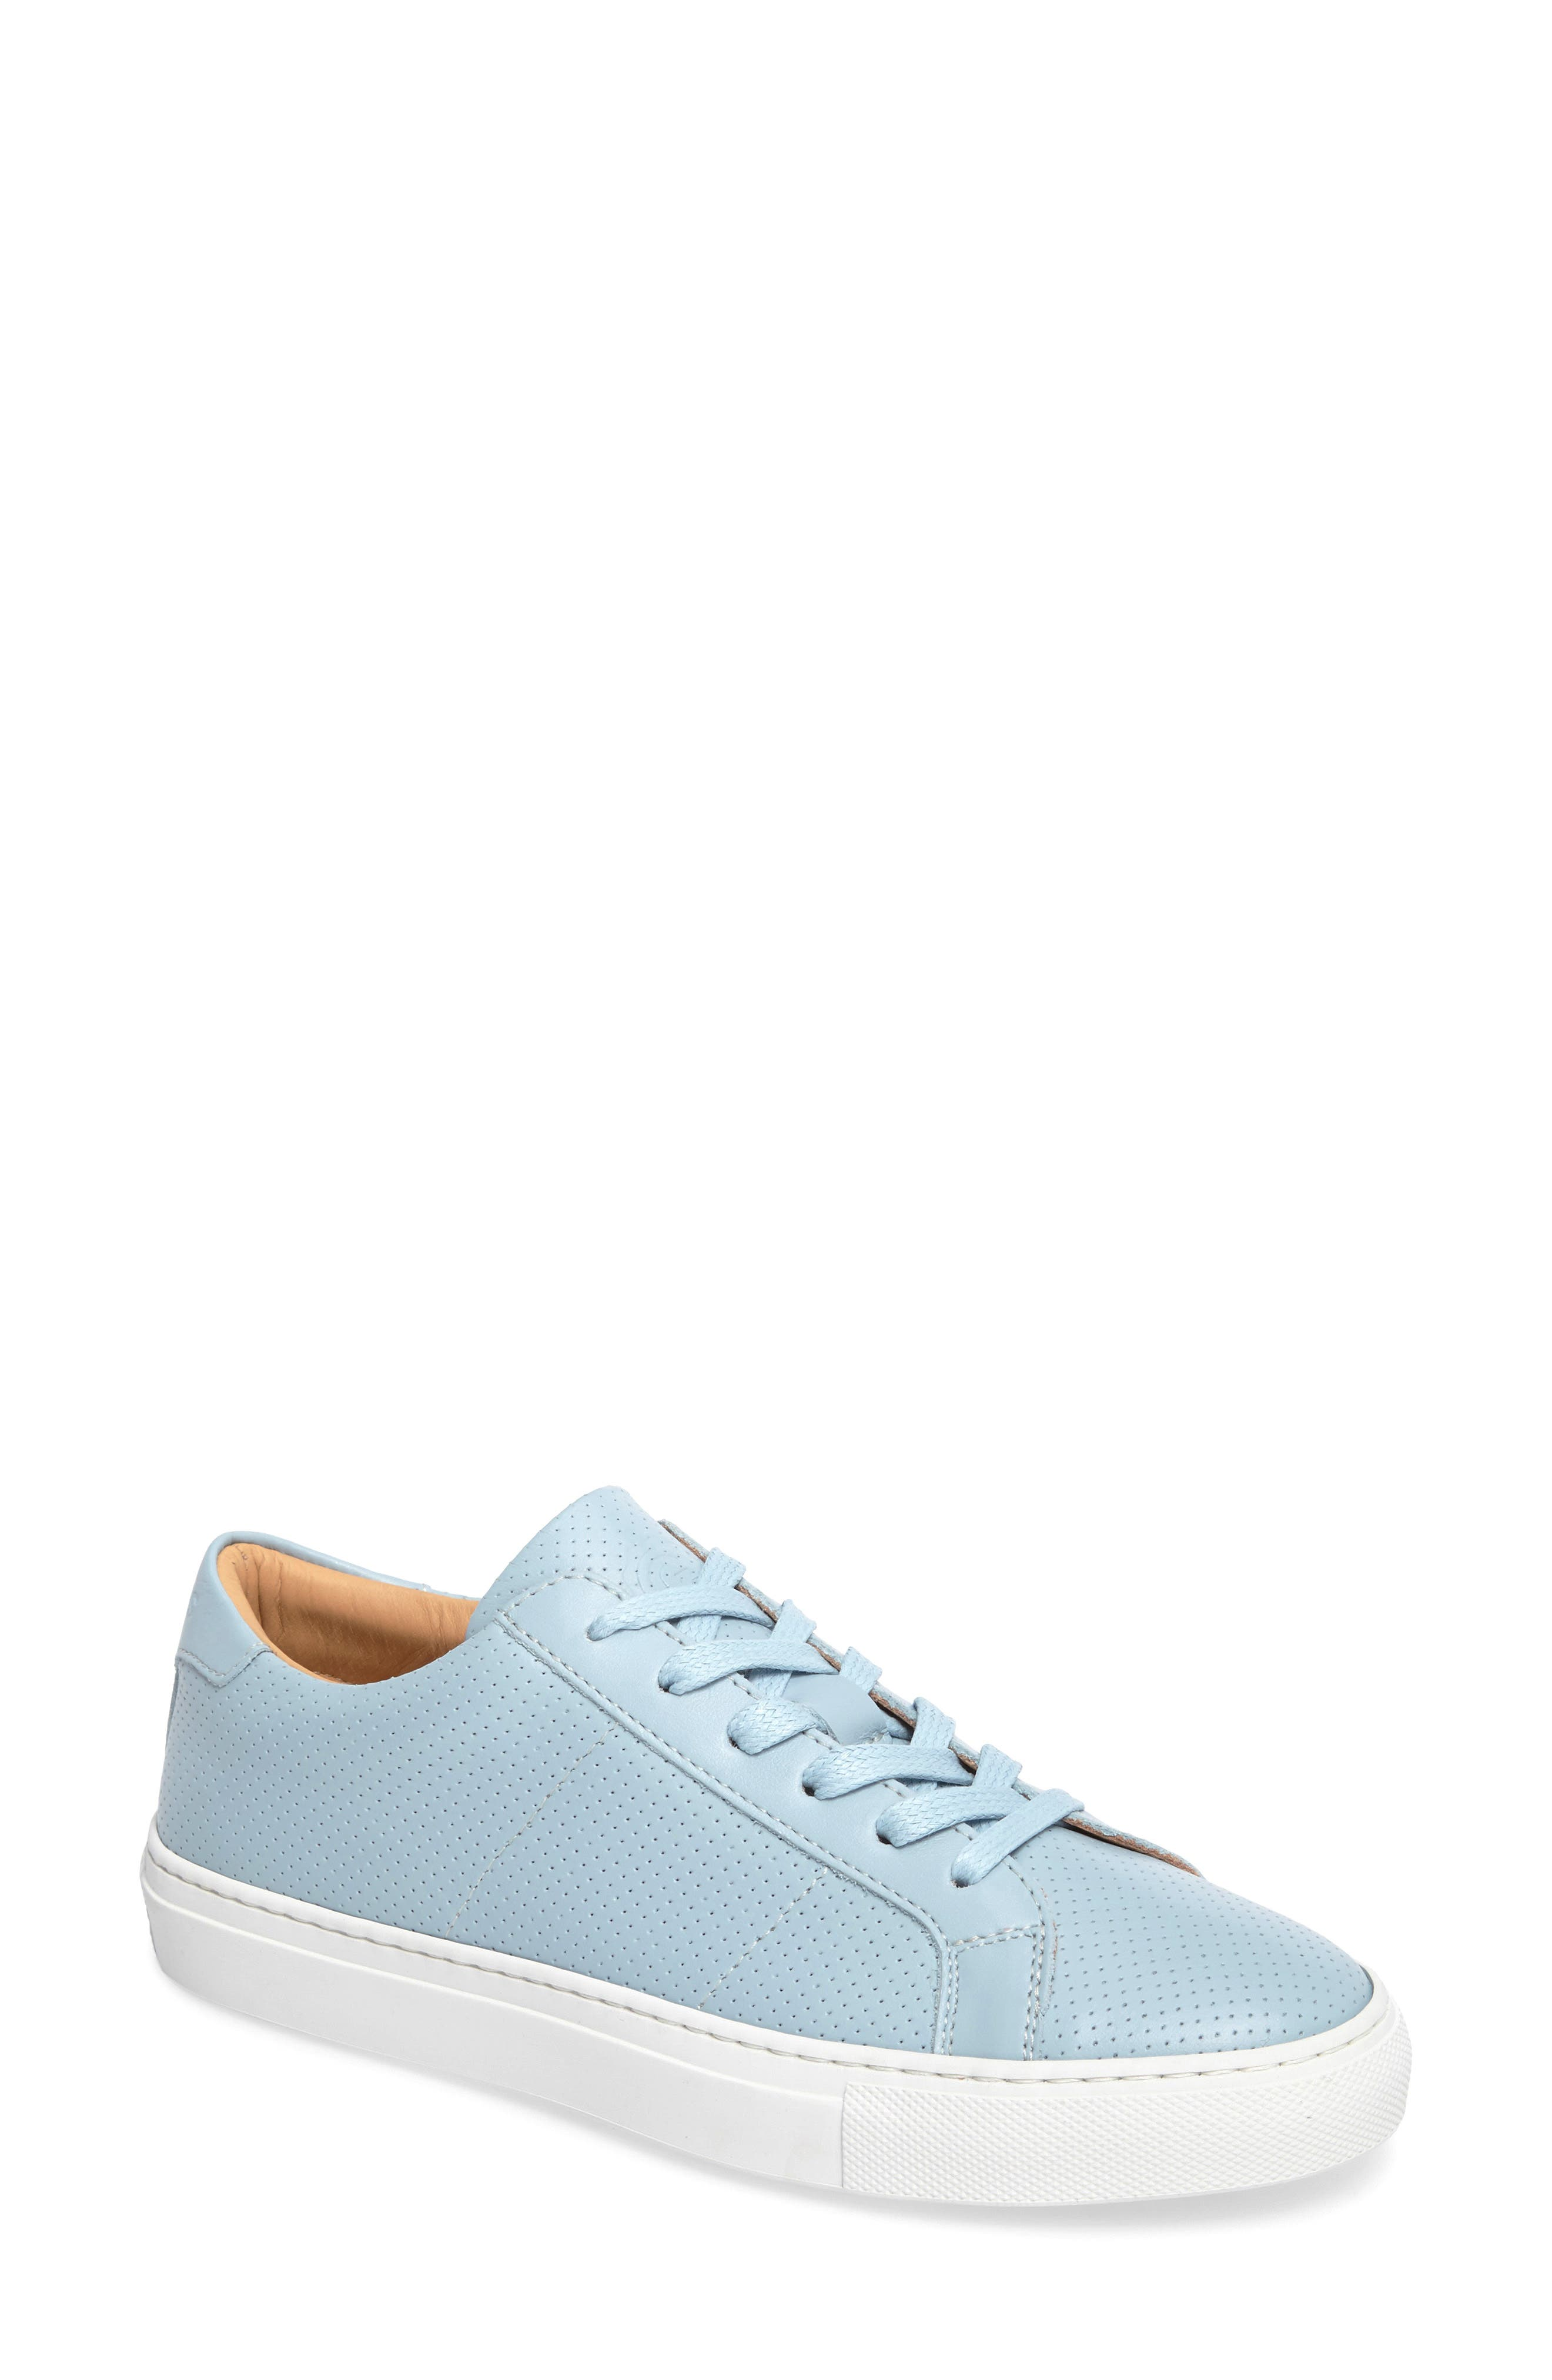 Greats Royale Perforated Low Top Sneaker (Women)